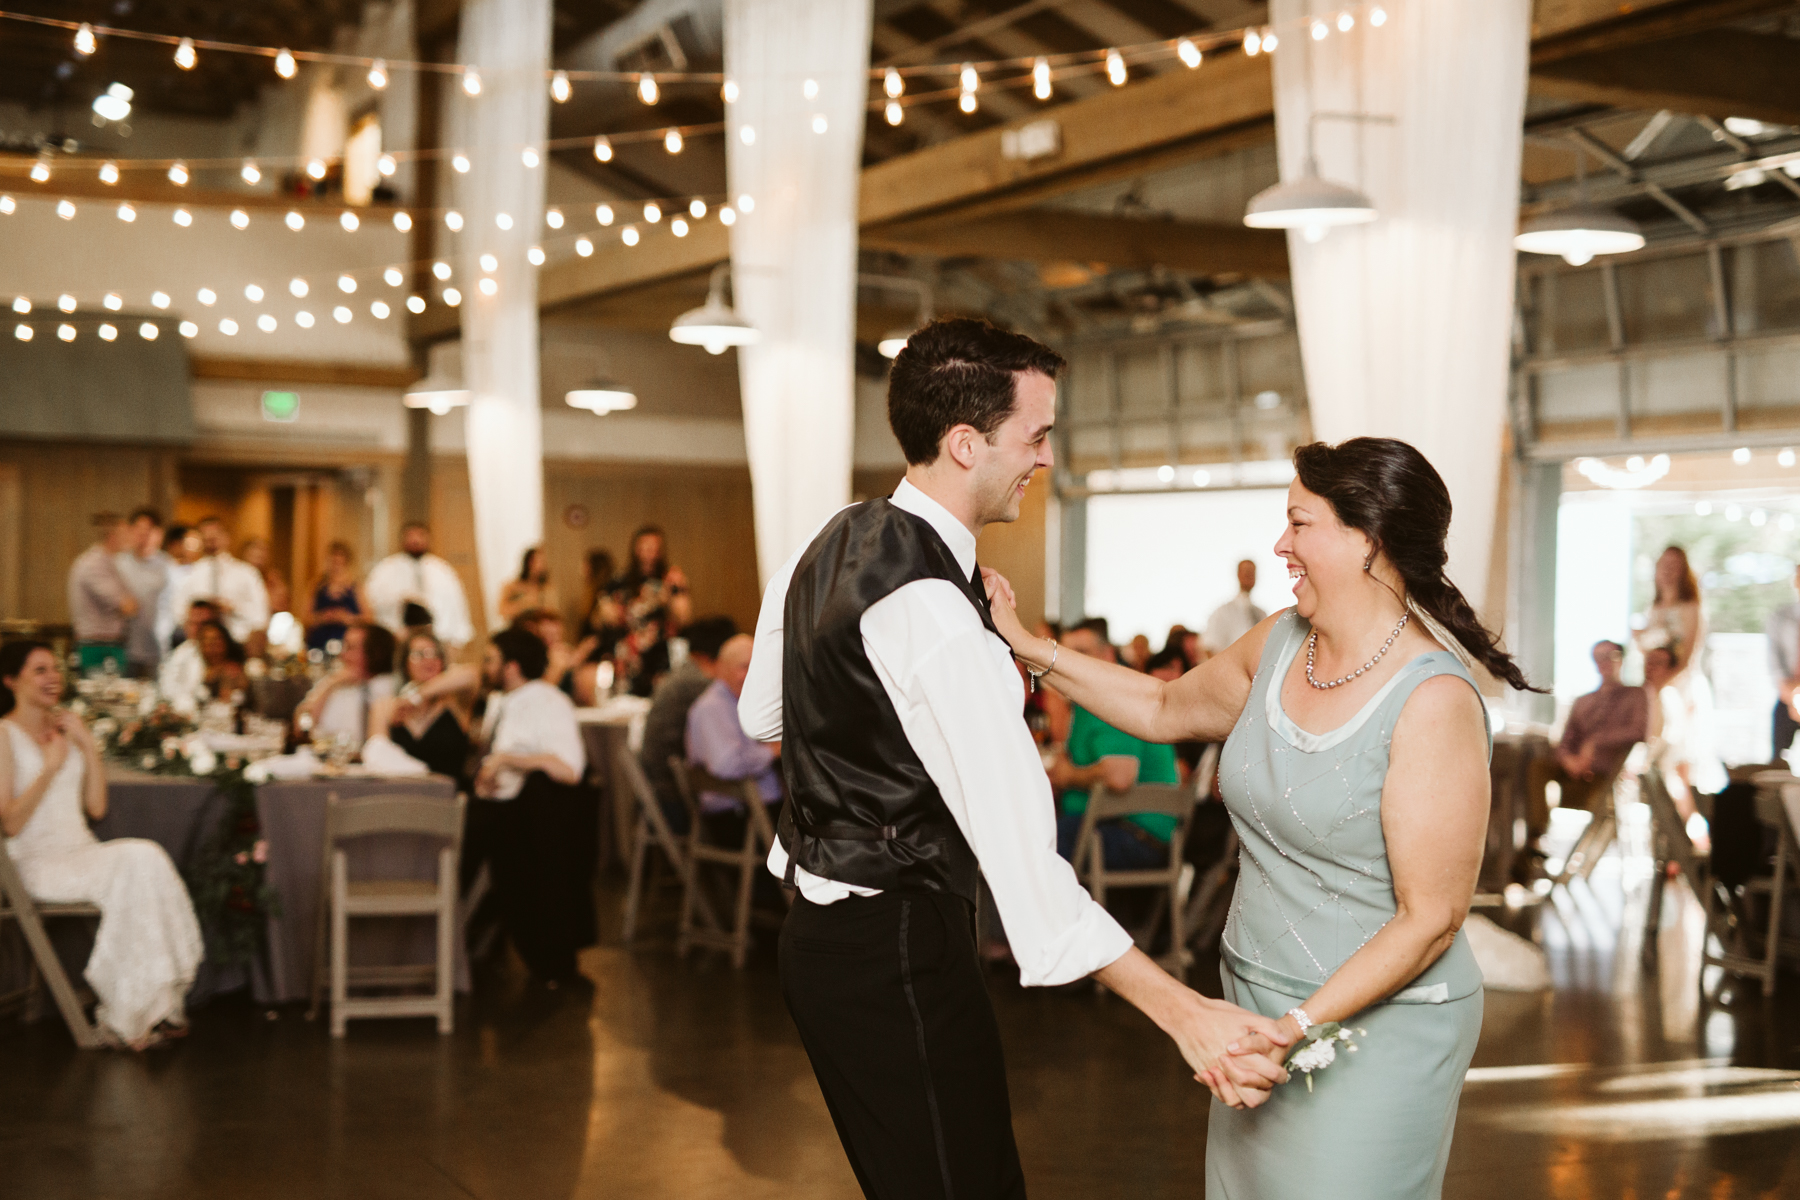 mother and son dance at a Wedding reception at the loveless cafe and barn in nashville, tennessee